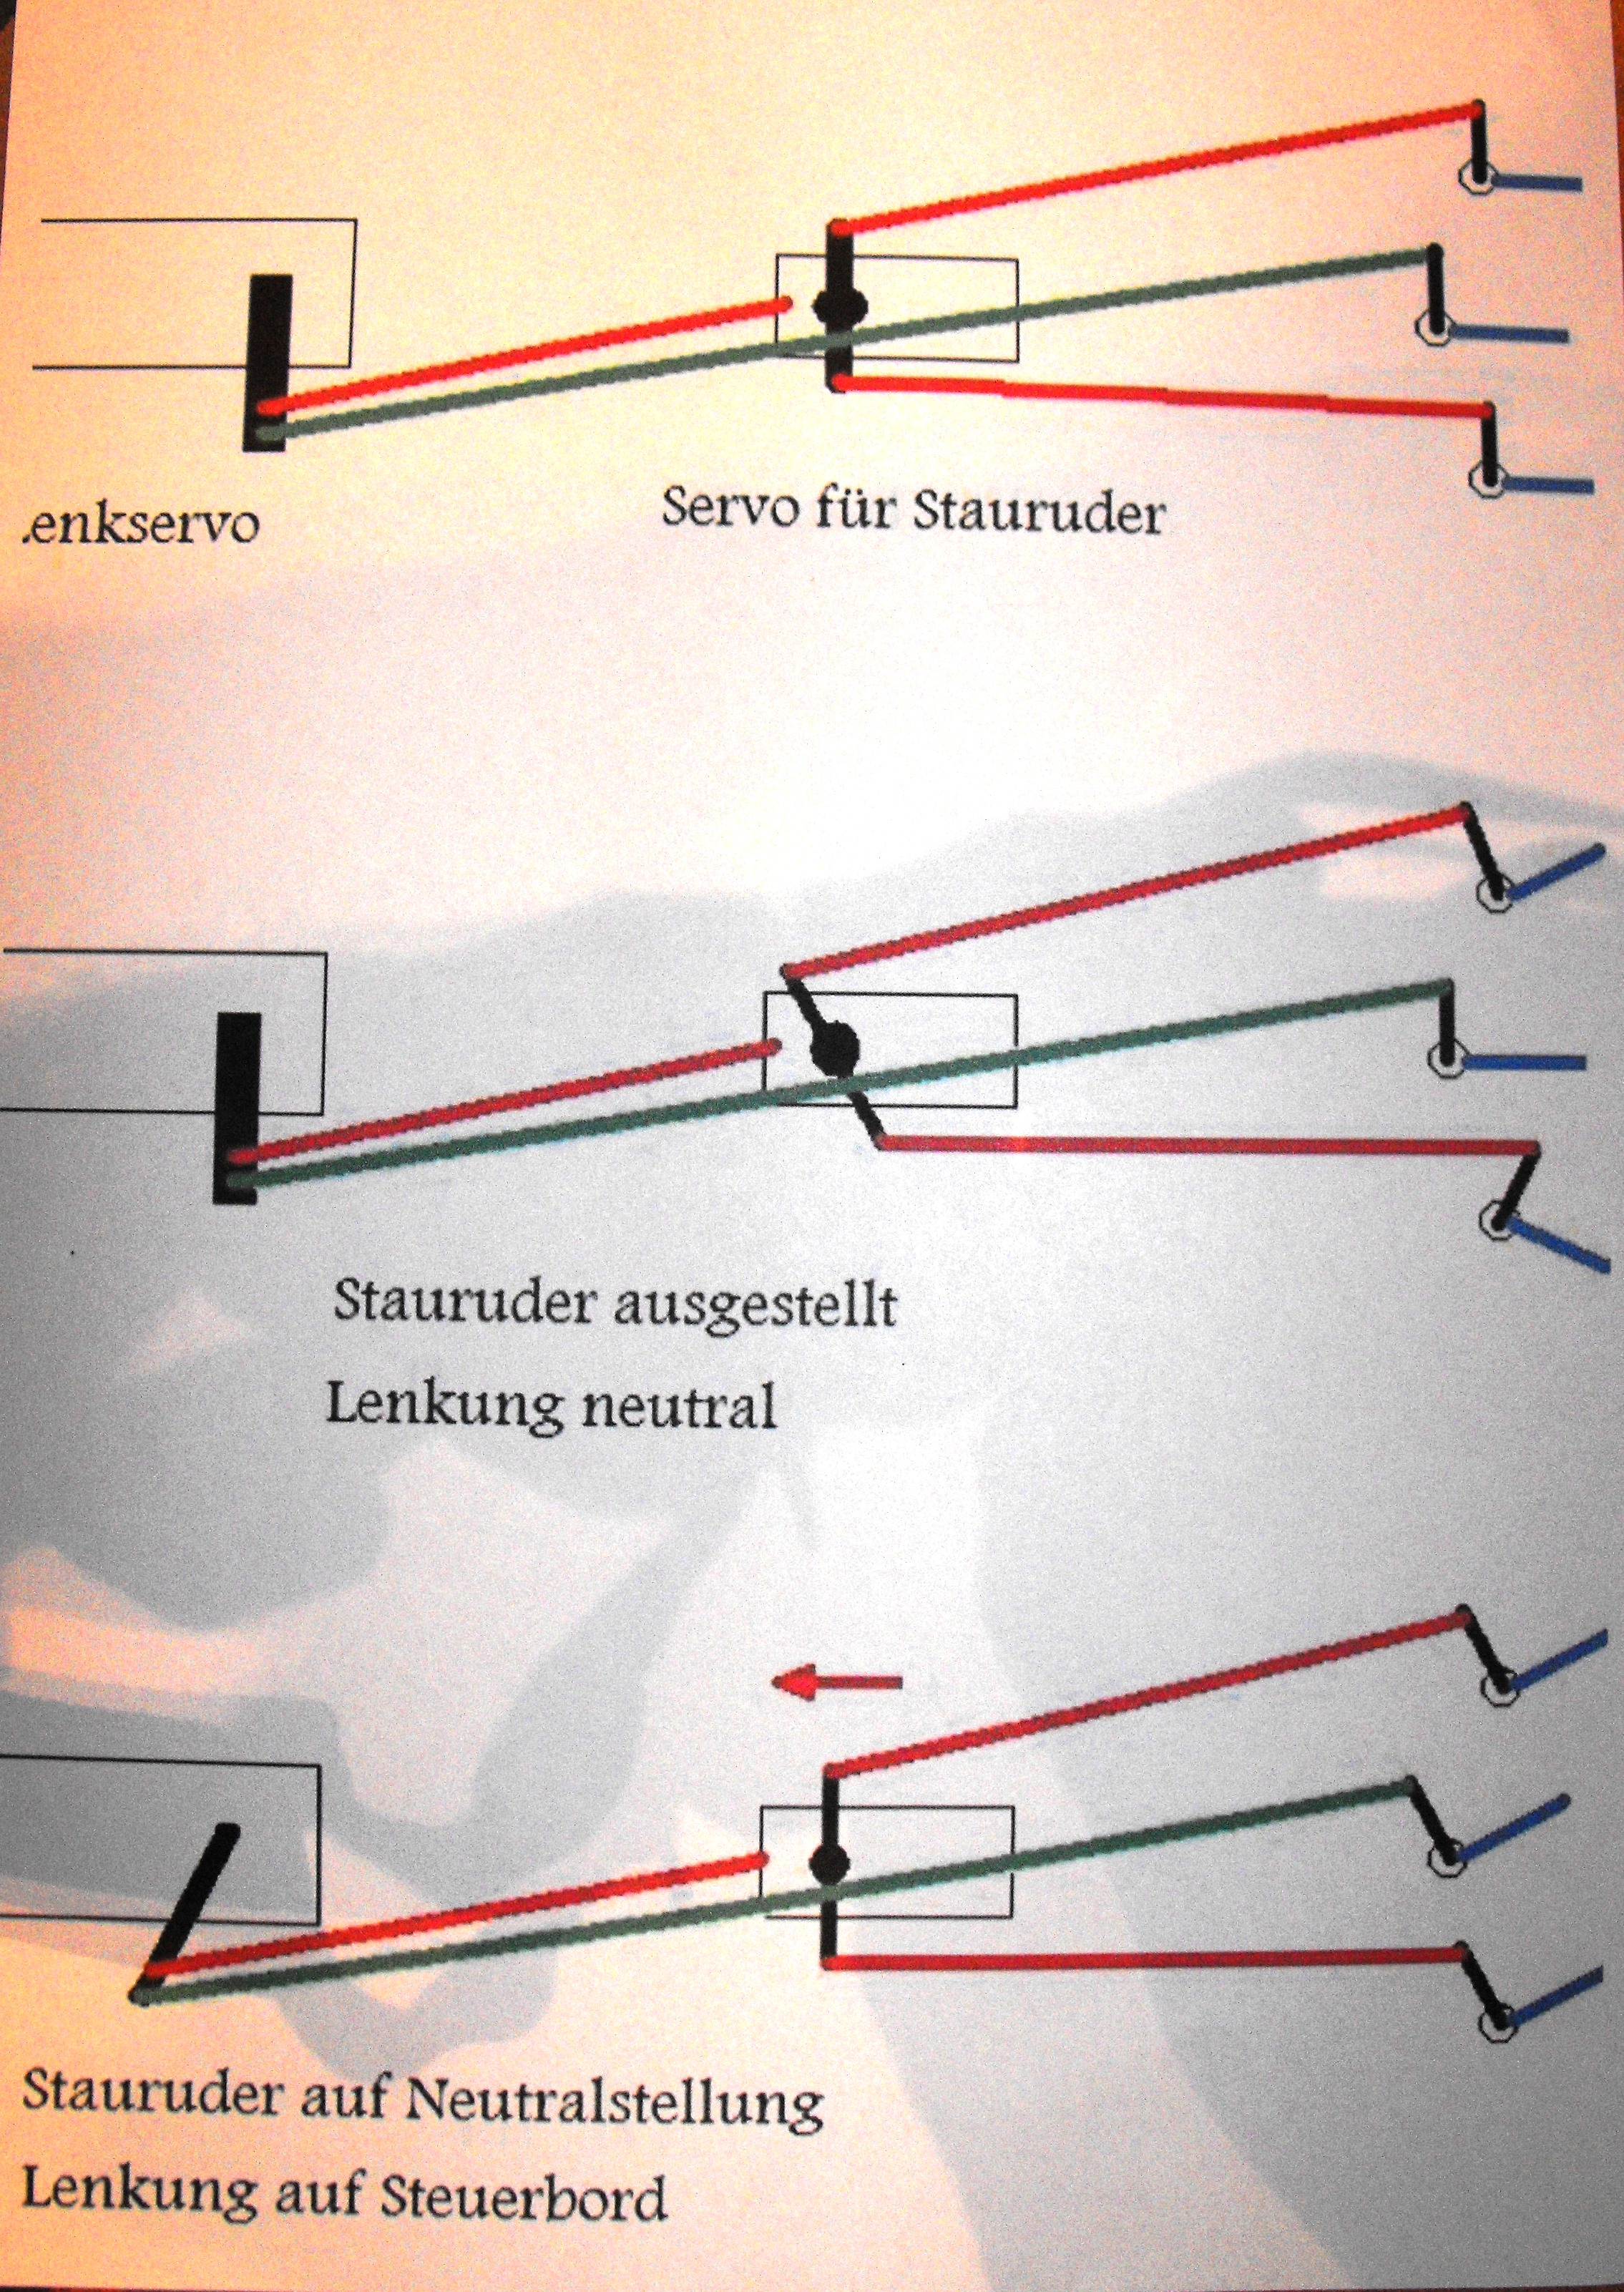 Click image for larger version  Name:Diagram Of Movement.JPG Views:136 Size:2.12 MB ID:1920071